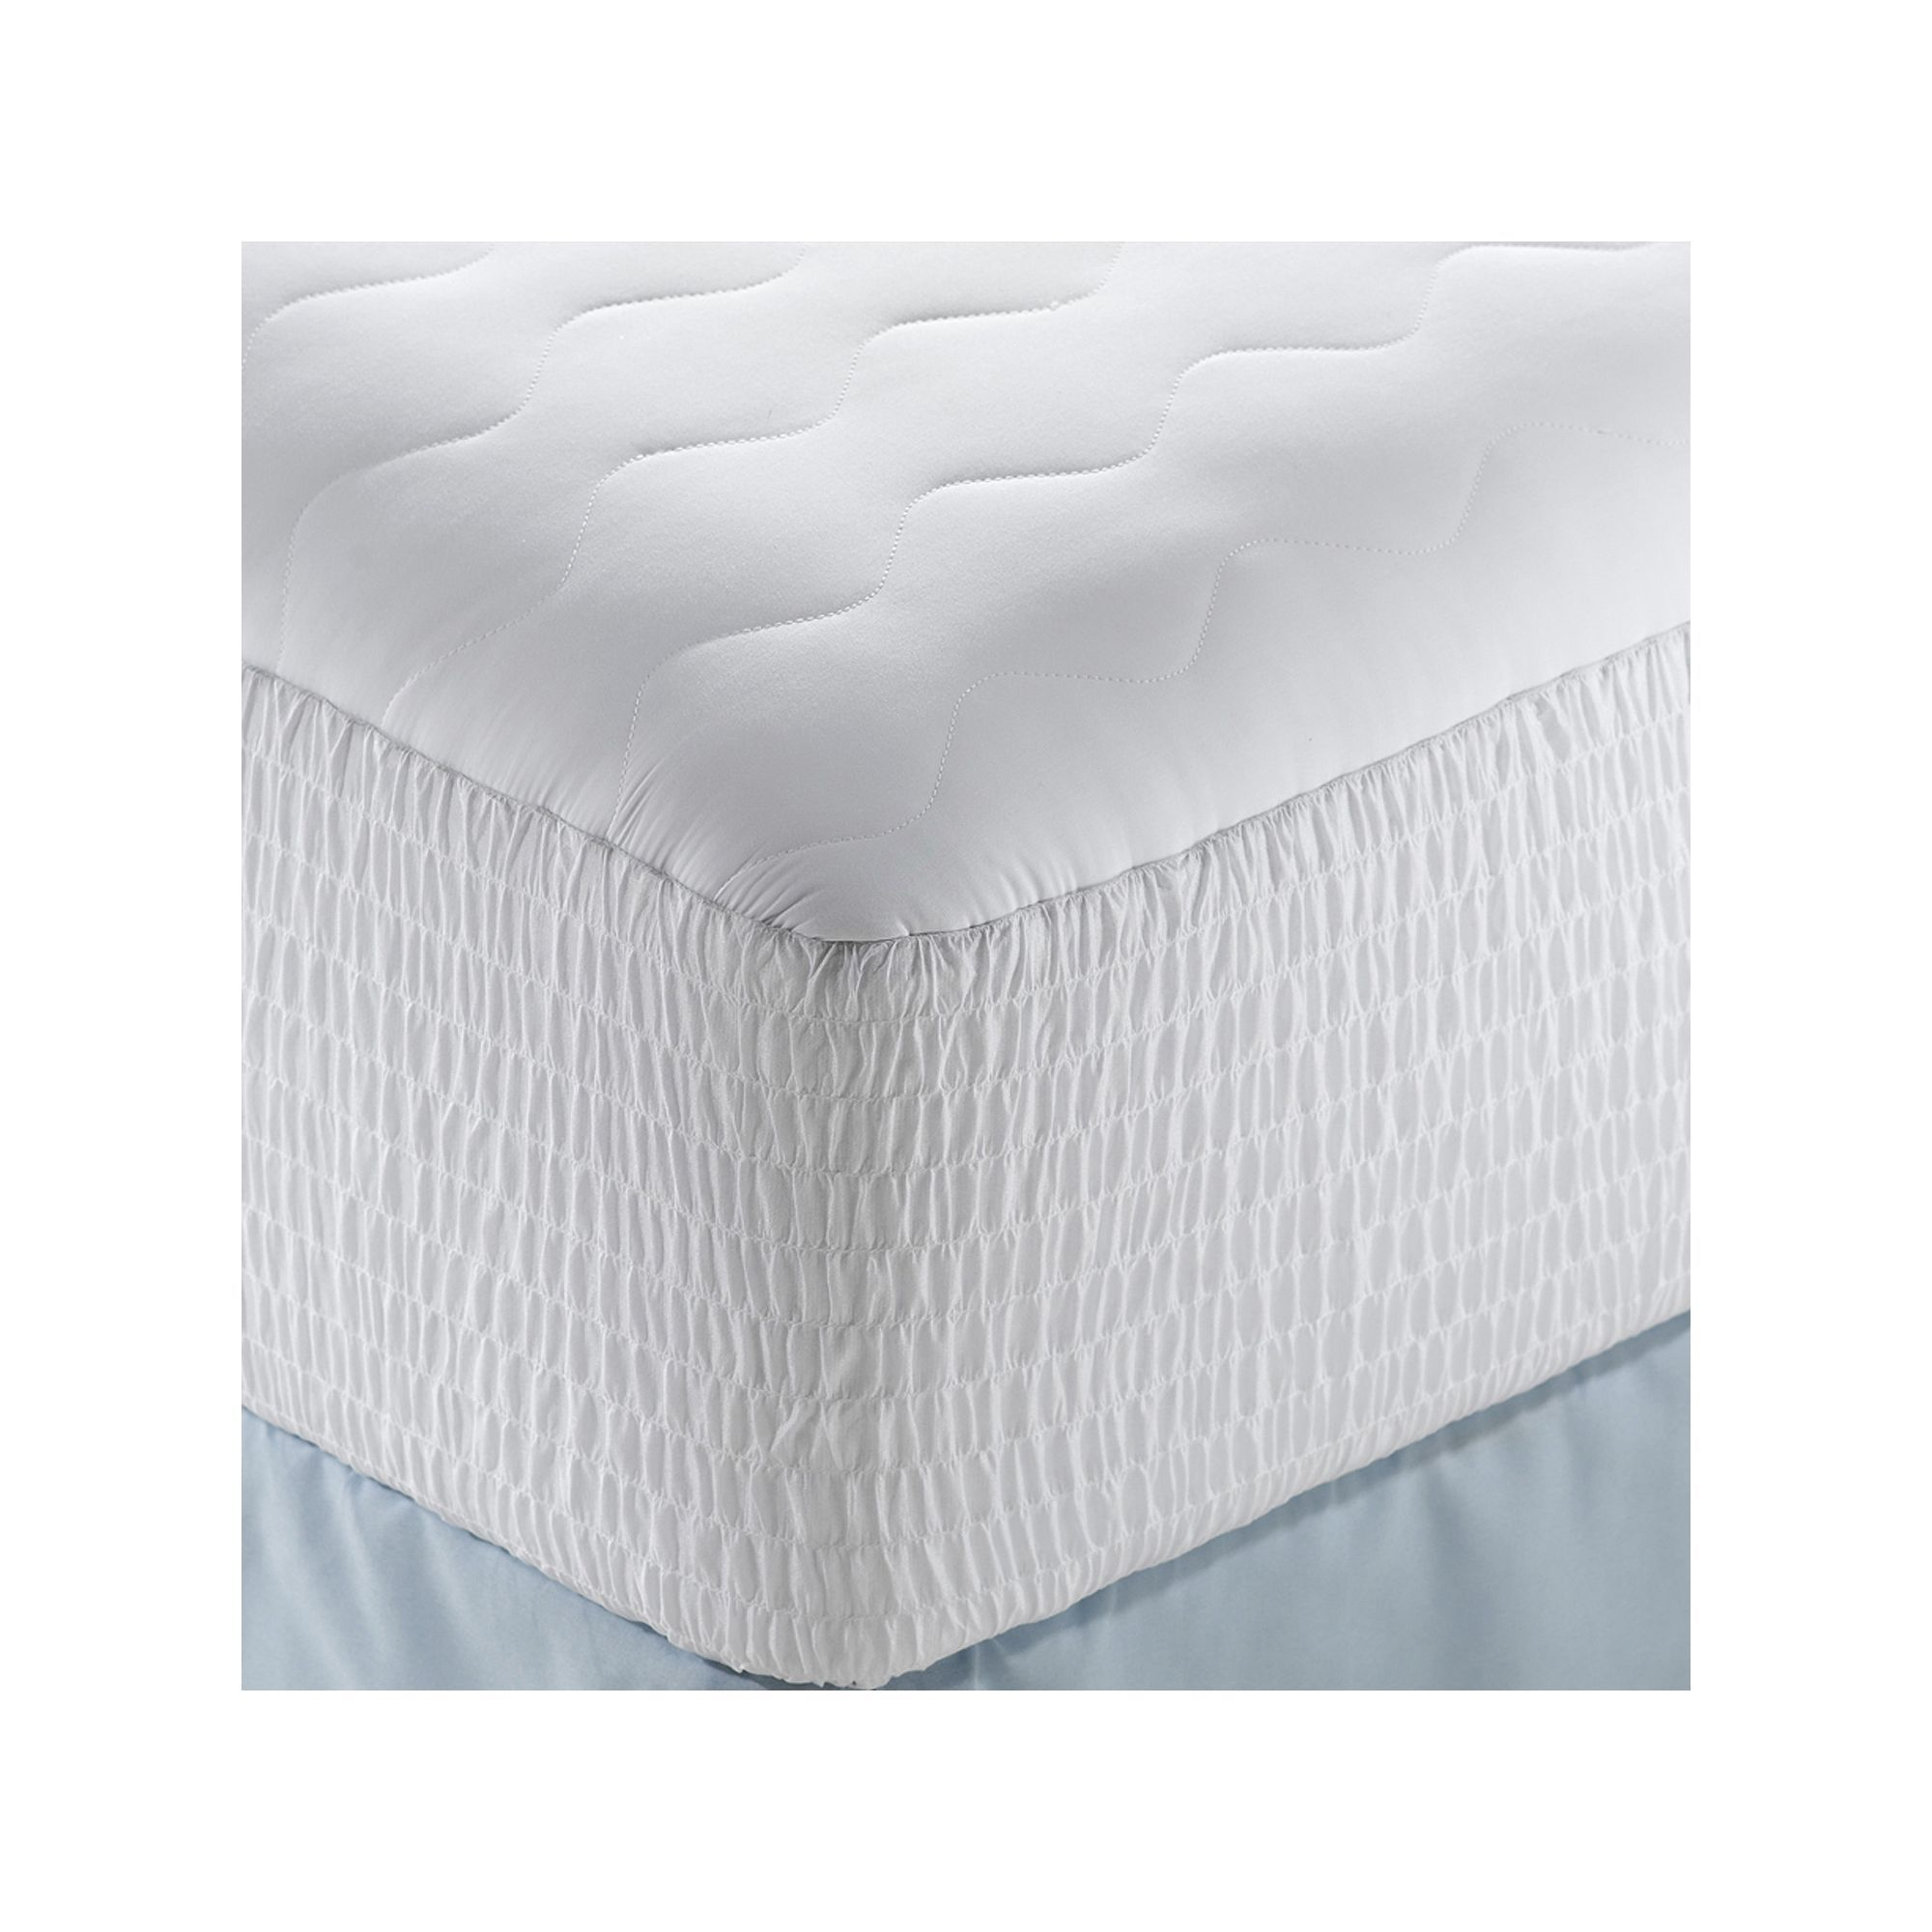 design pad decorating sheets cover bedding mattress pillow home pedic covers ideas queen cases tempur